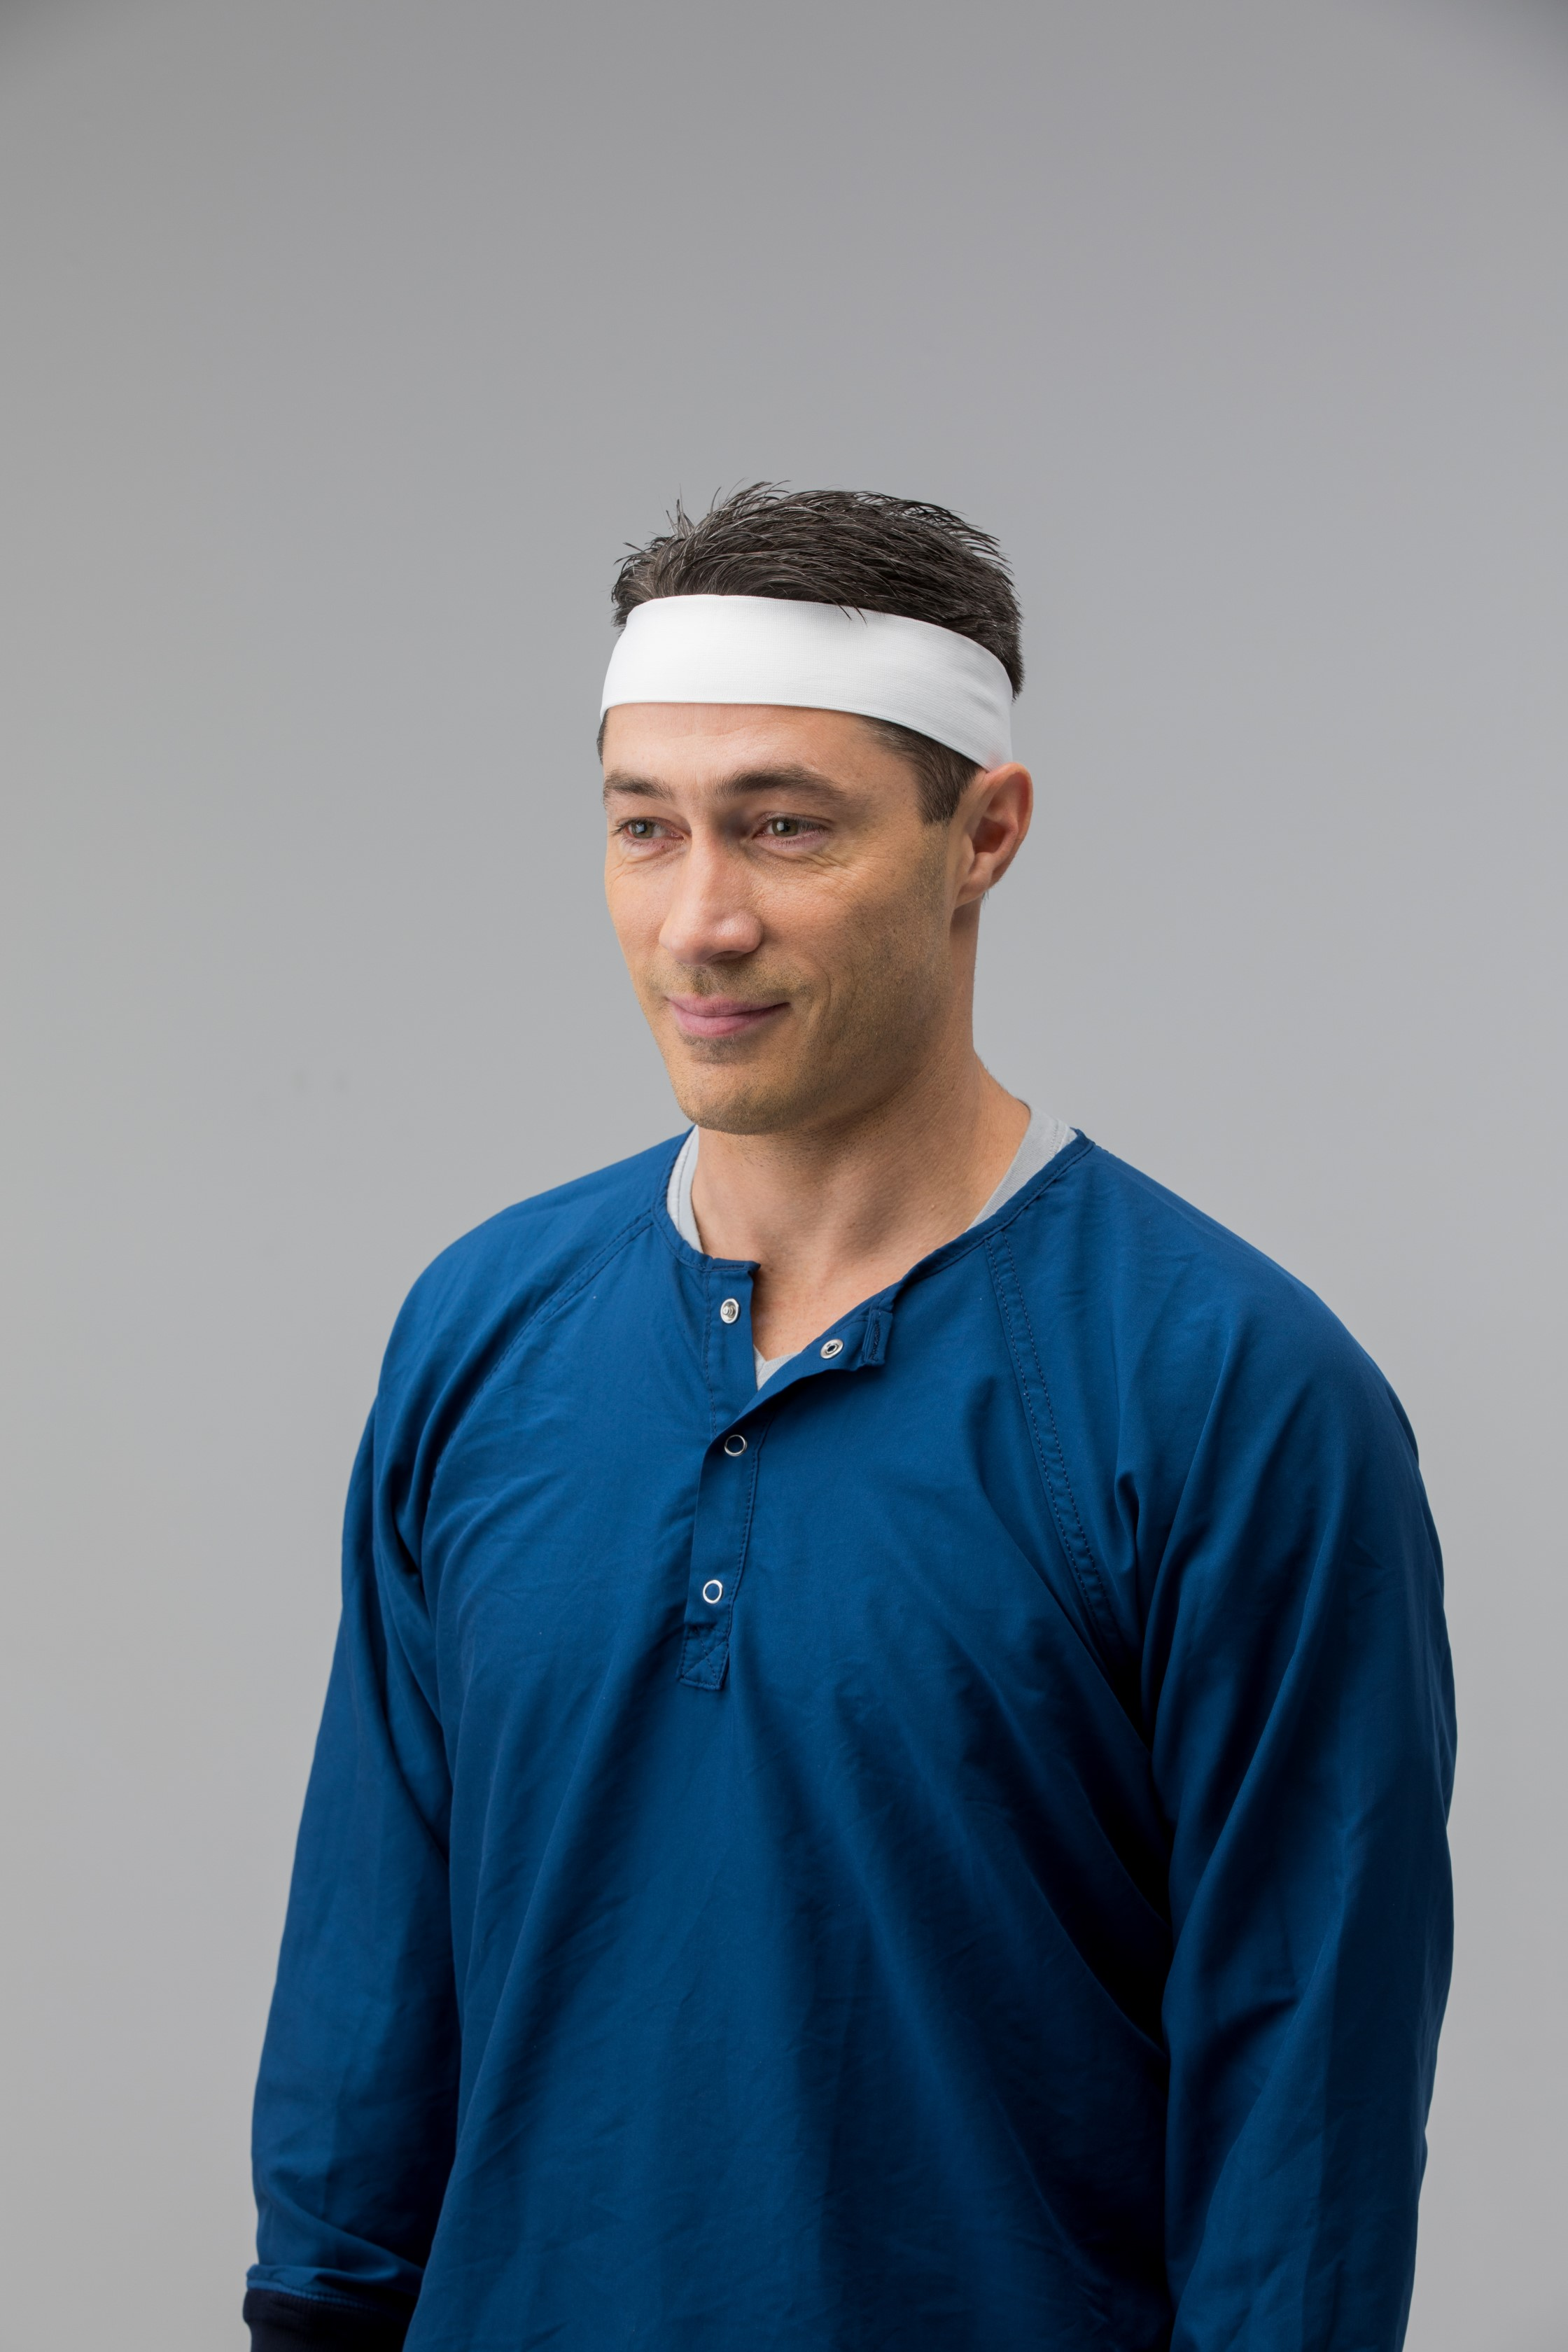 Sweat-less Cleanroom Headband - SL-01-M